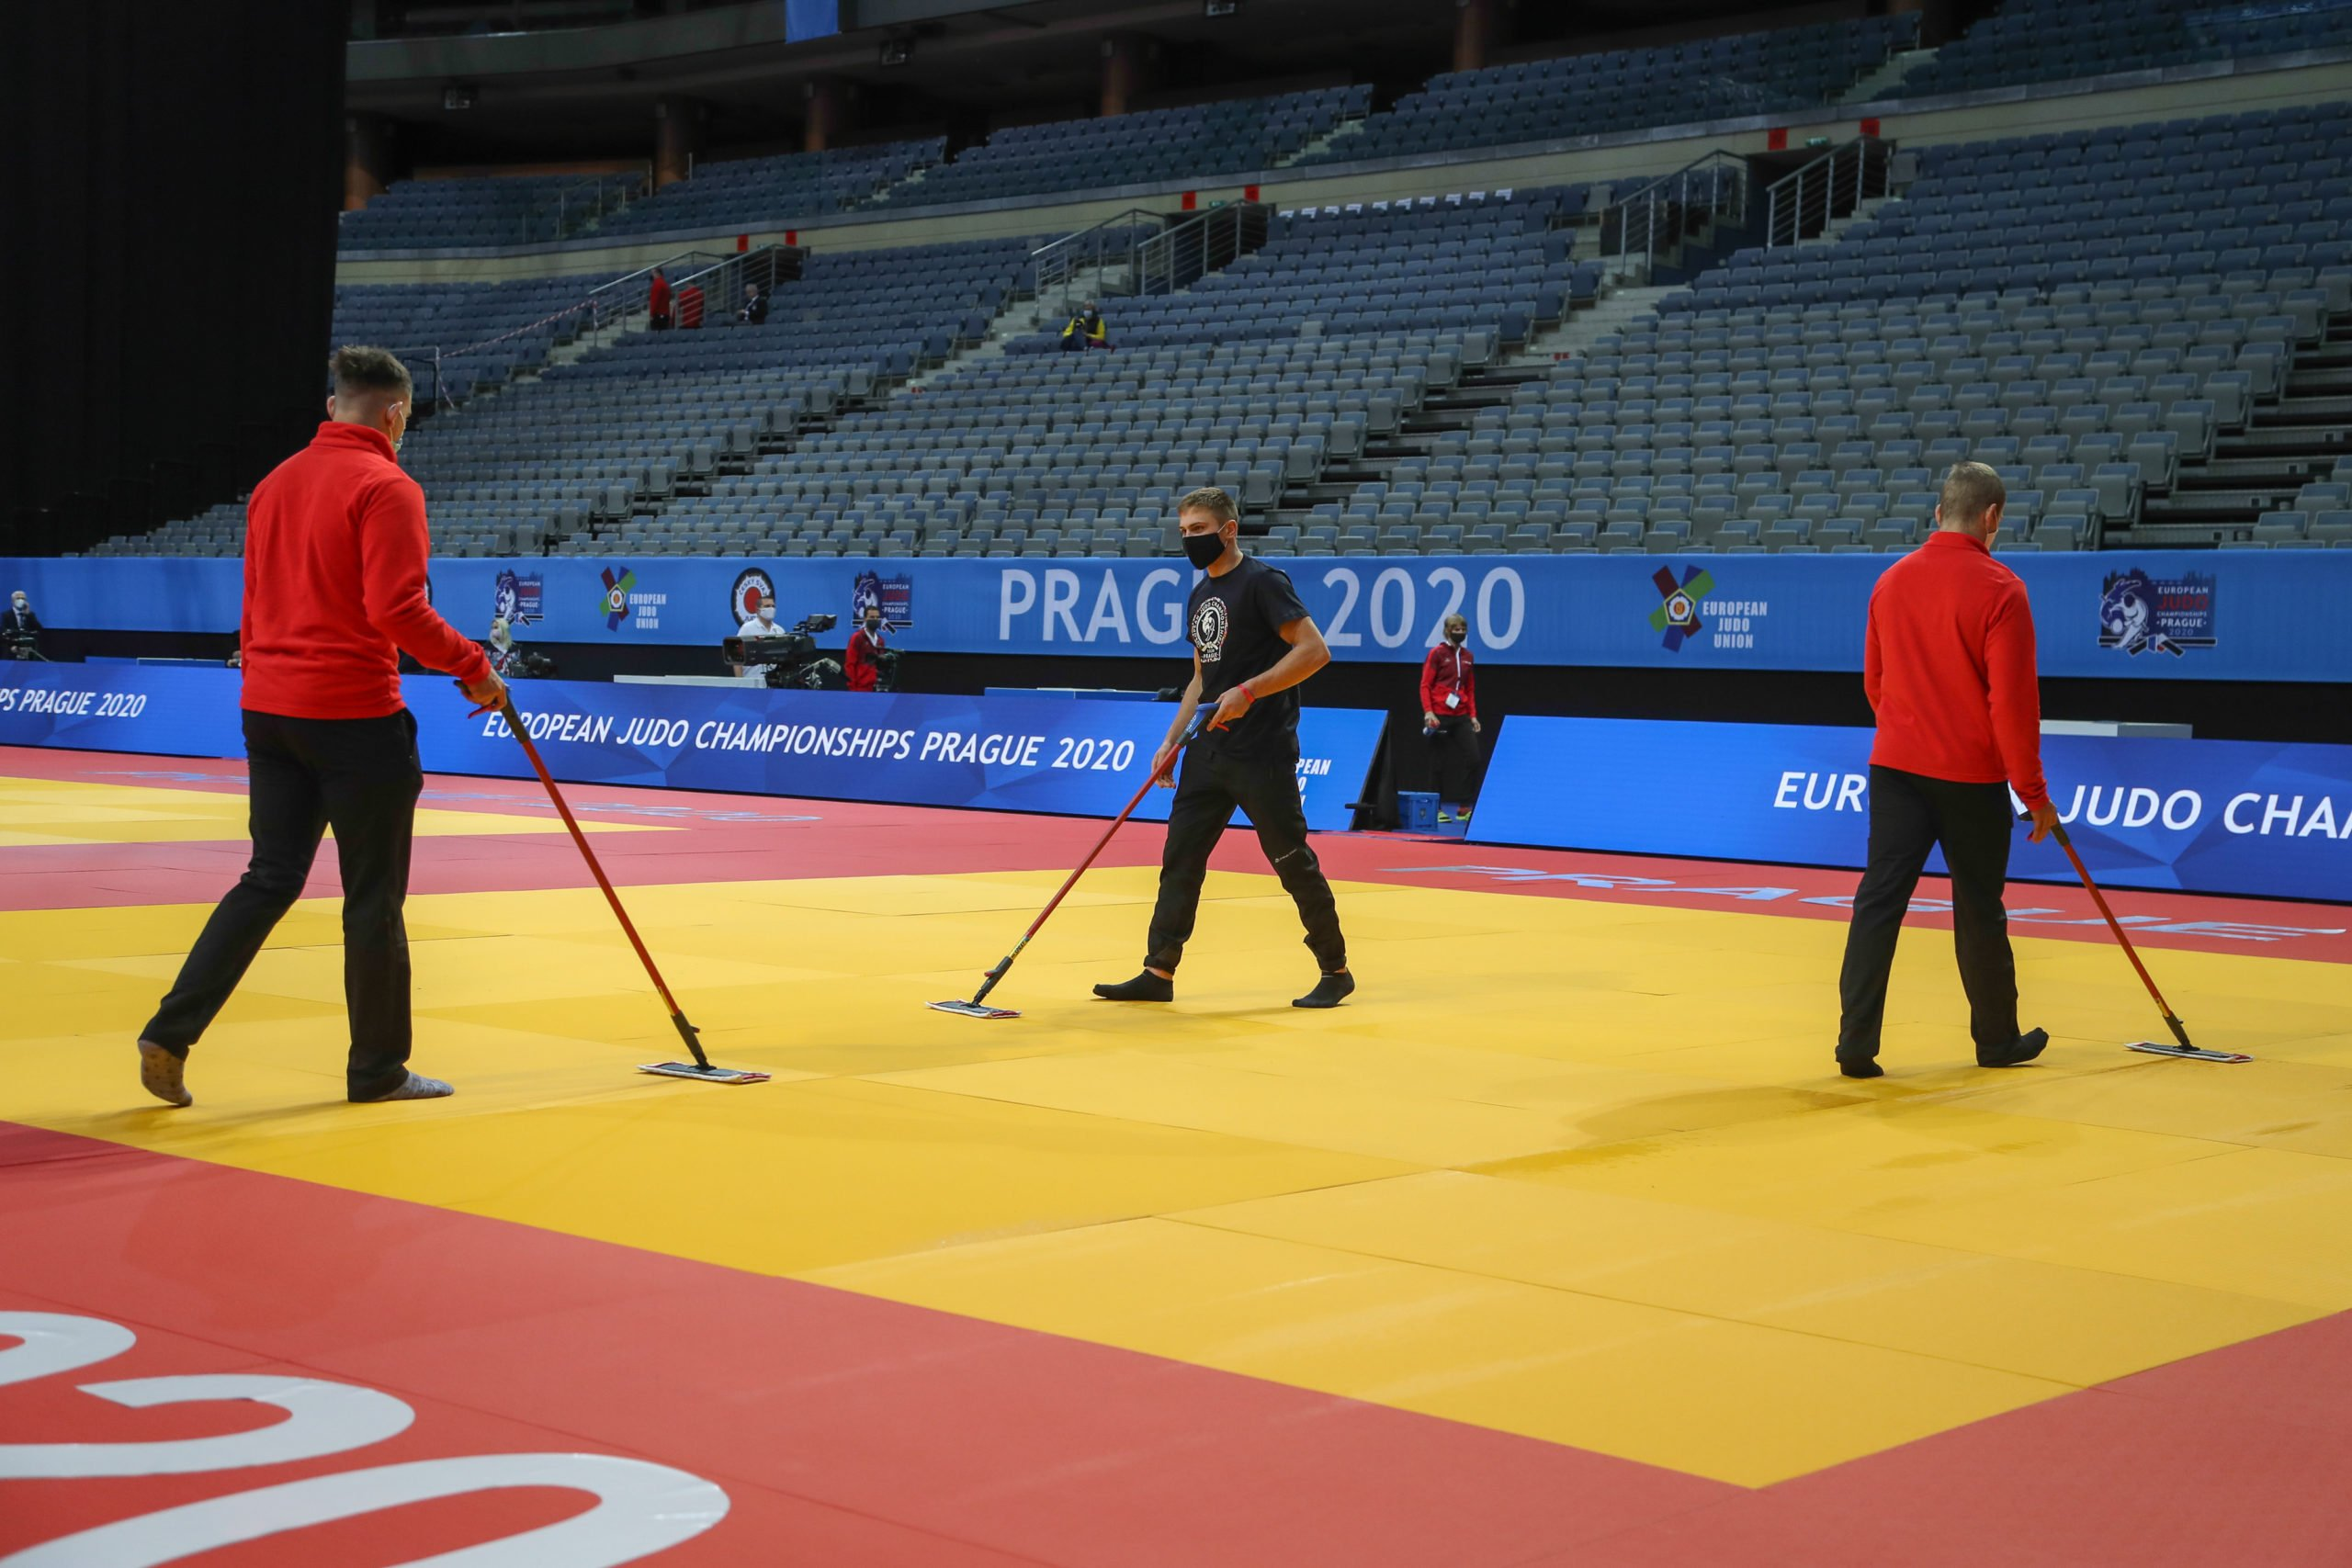 SITUATION IMPROVES FOR ARRIVALS AHEAD OF THE PRAGUE EUROPEAN OPEN